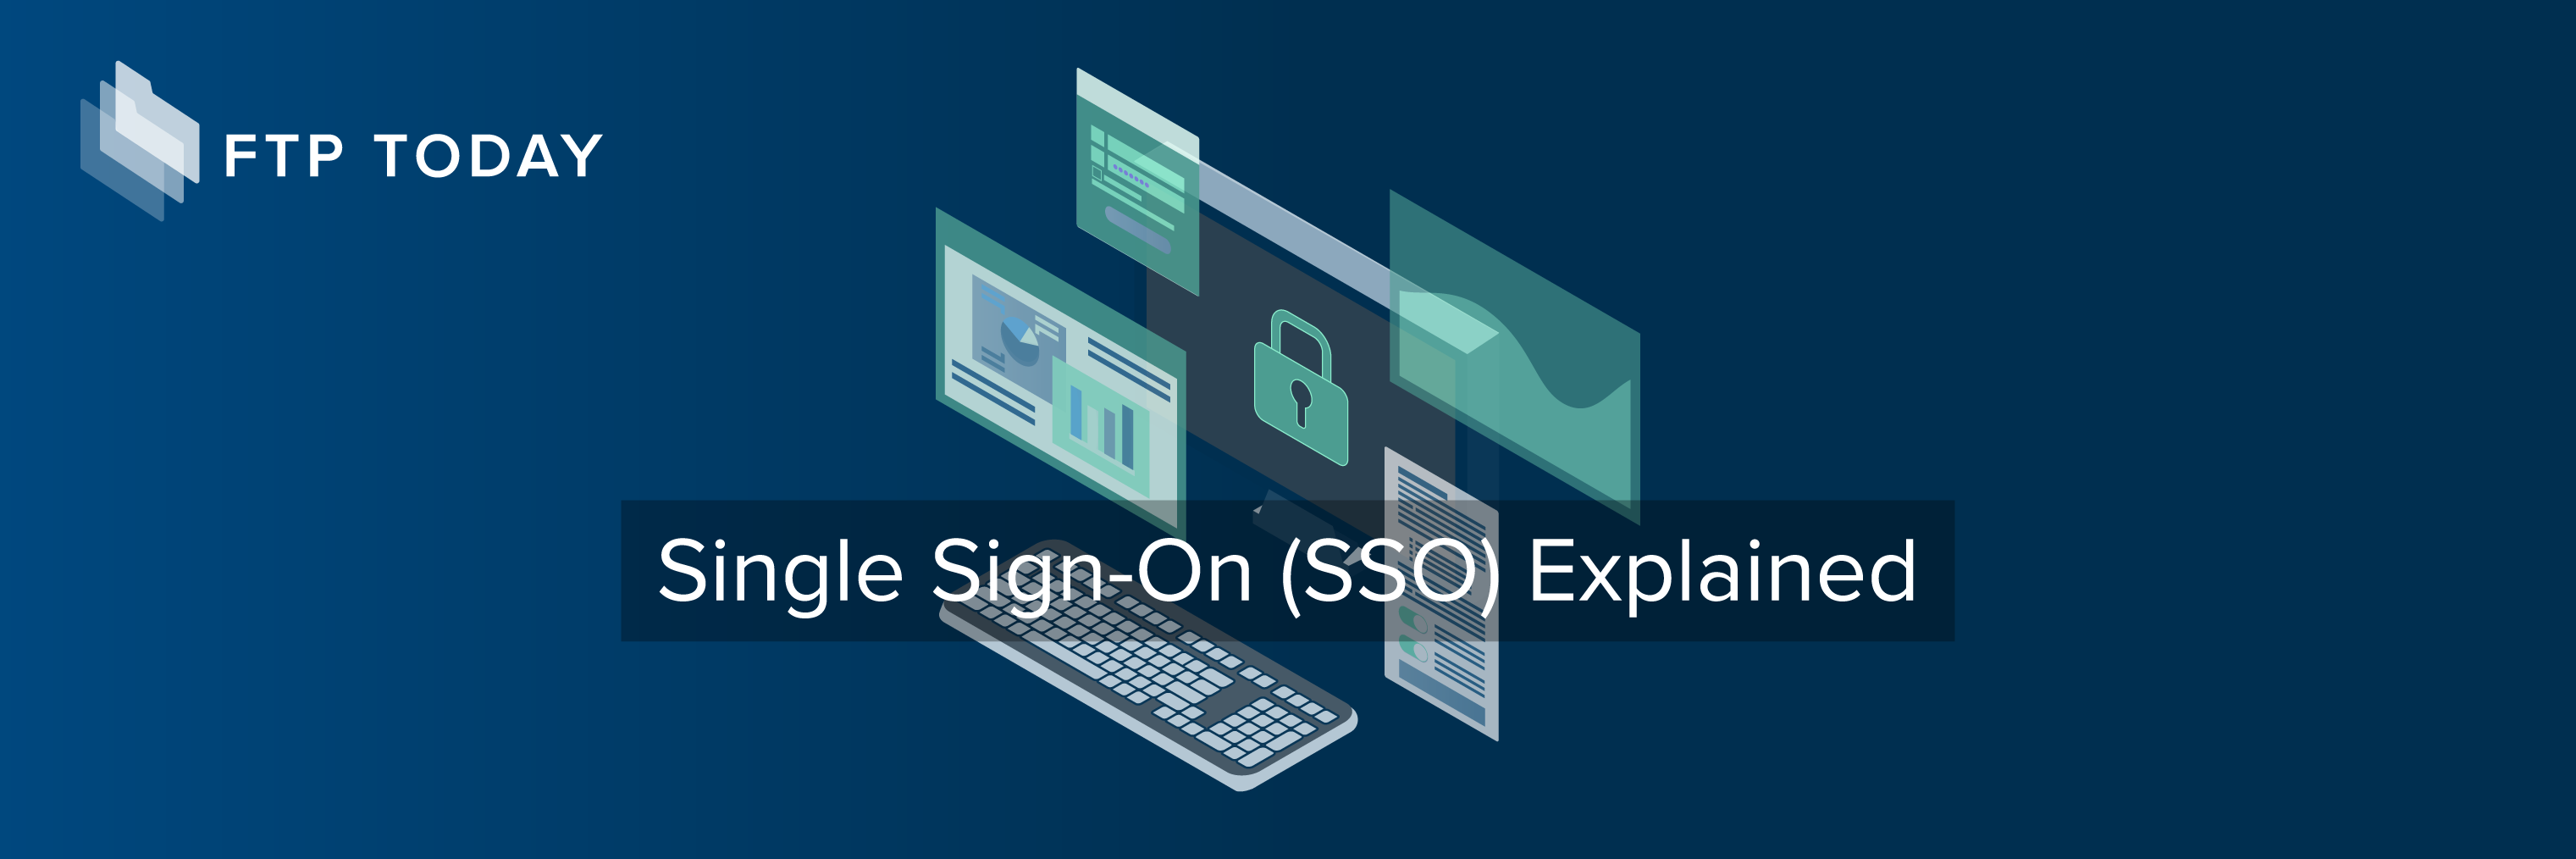 Single Sign-On (SSO) Explained: What is SSO, How it Works, Why it Improves Security & More